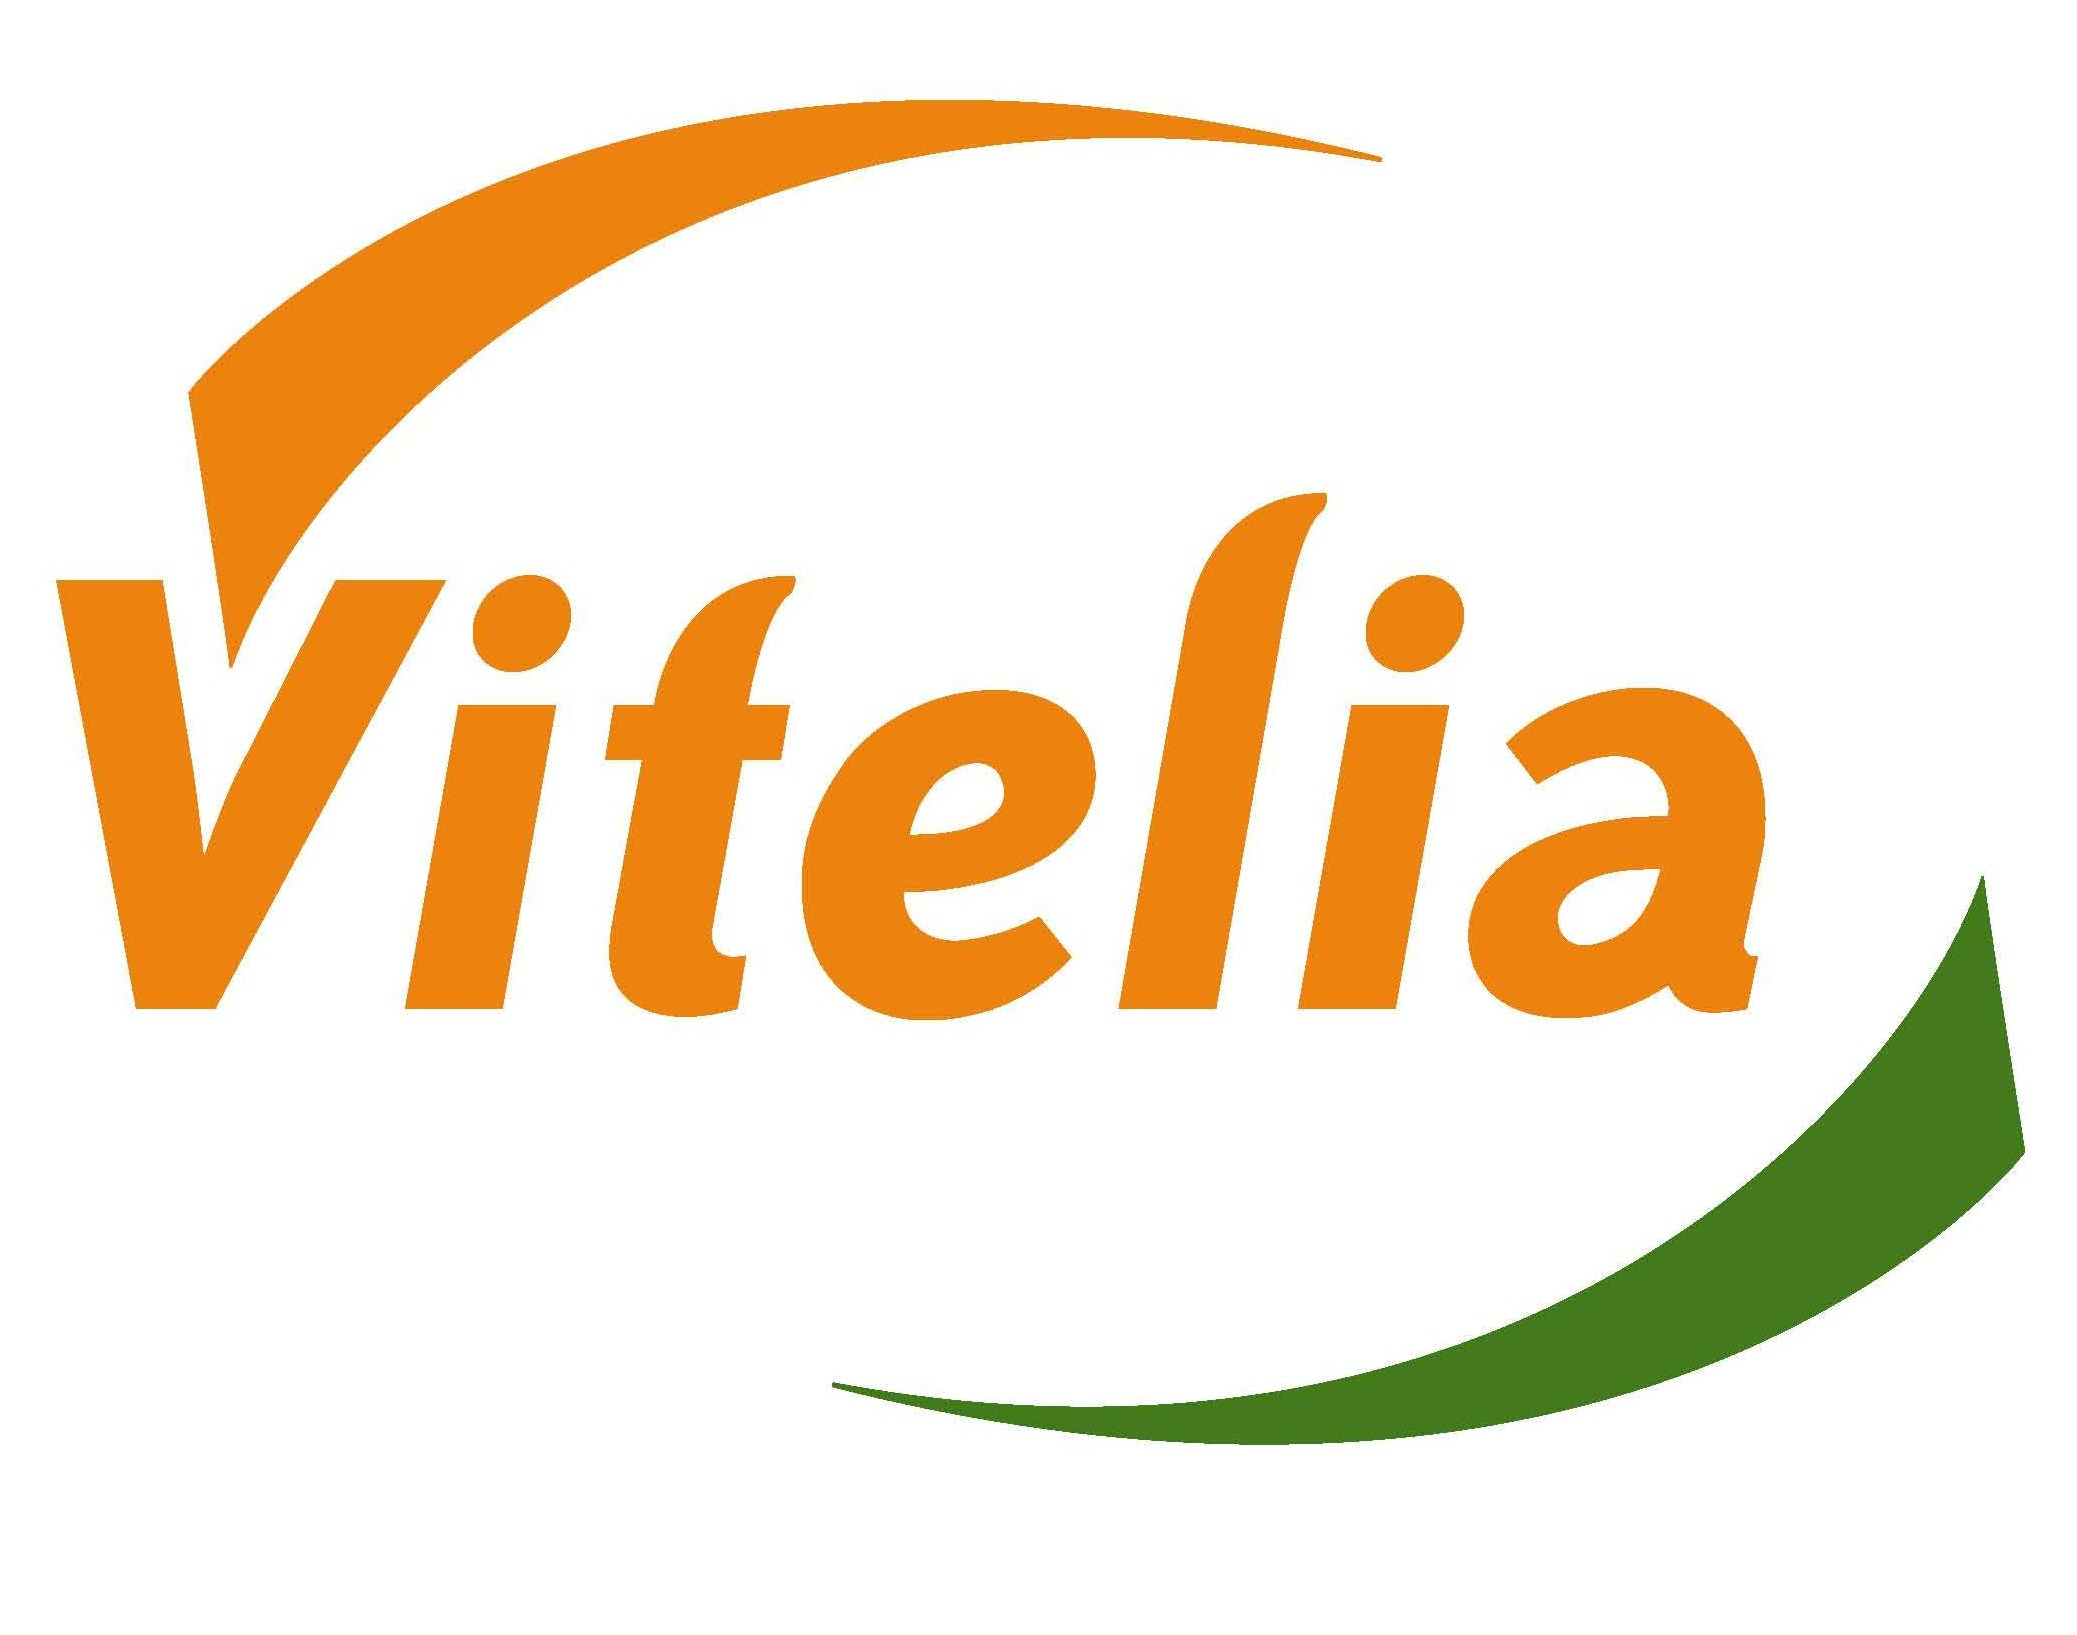 Vitelia Voeders (Vitelia Feeds)